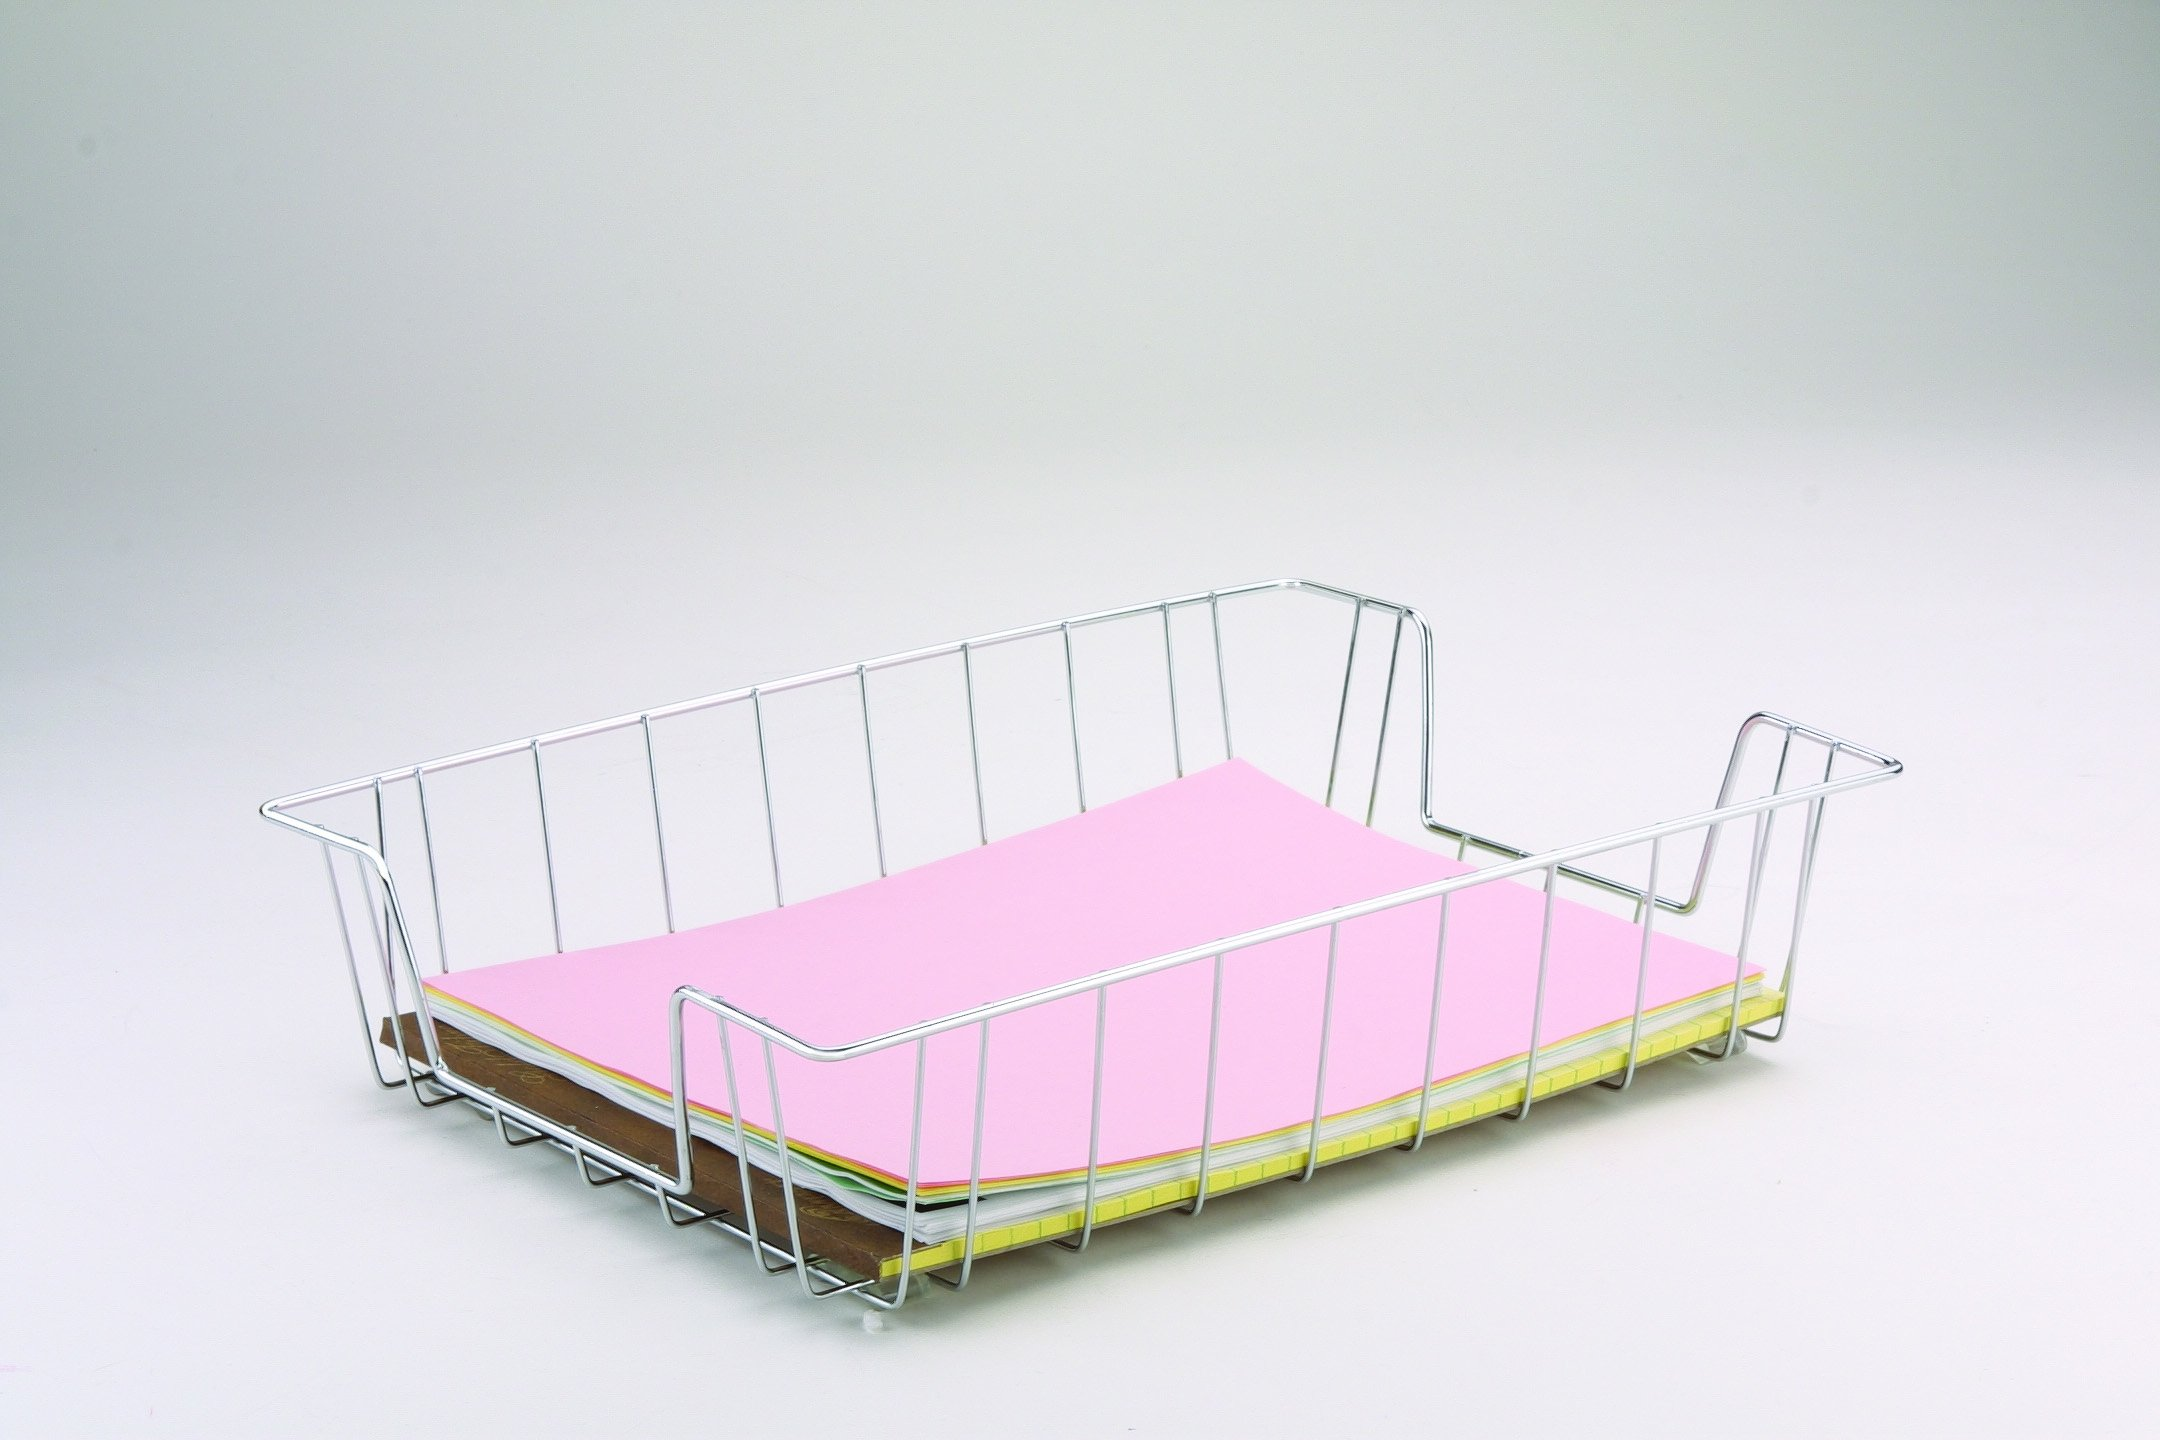 Cheap Wire In Tray, find Wire In Tray deals on line at Alibaba.com